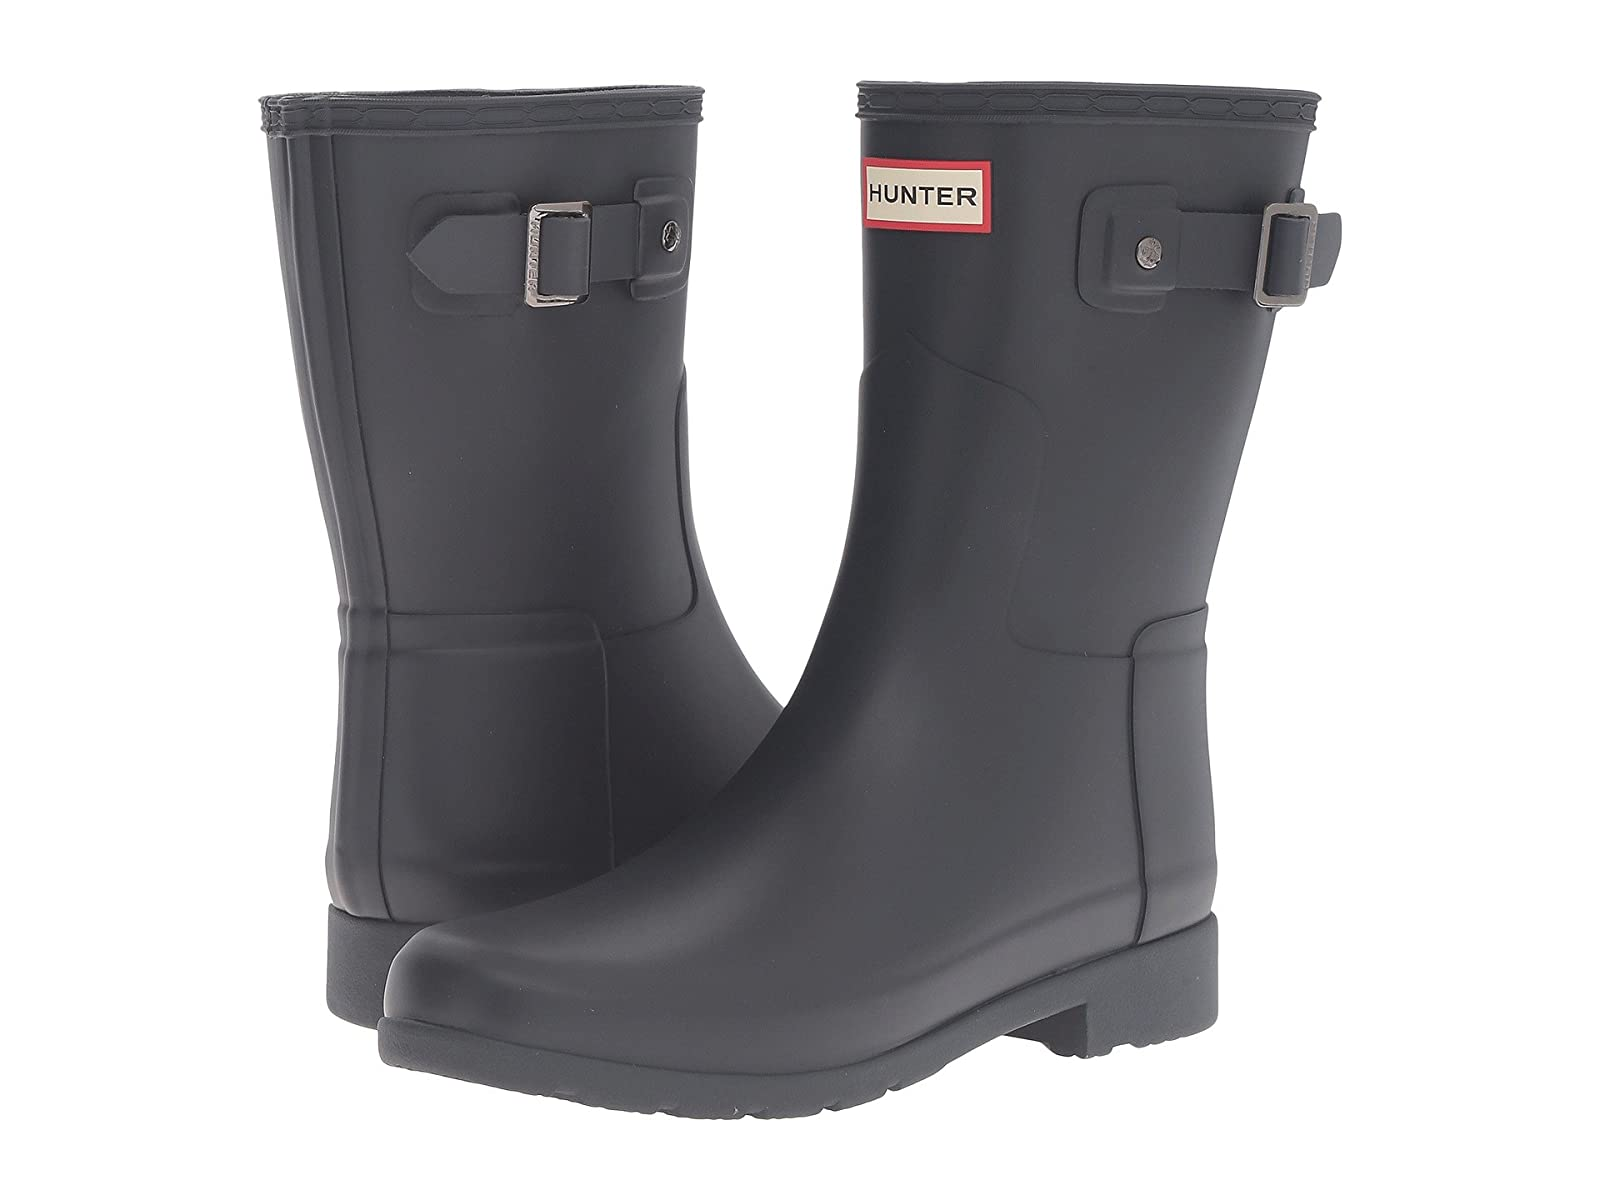 Hunter Original Refined Short Rain BootsAffordable and distinctive shoes